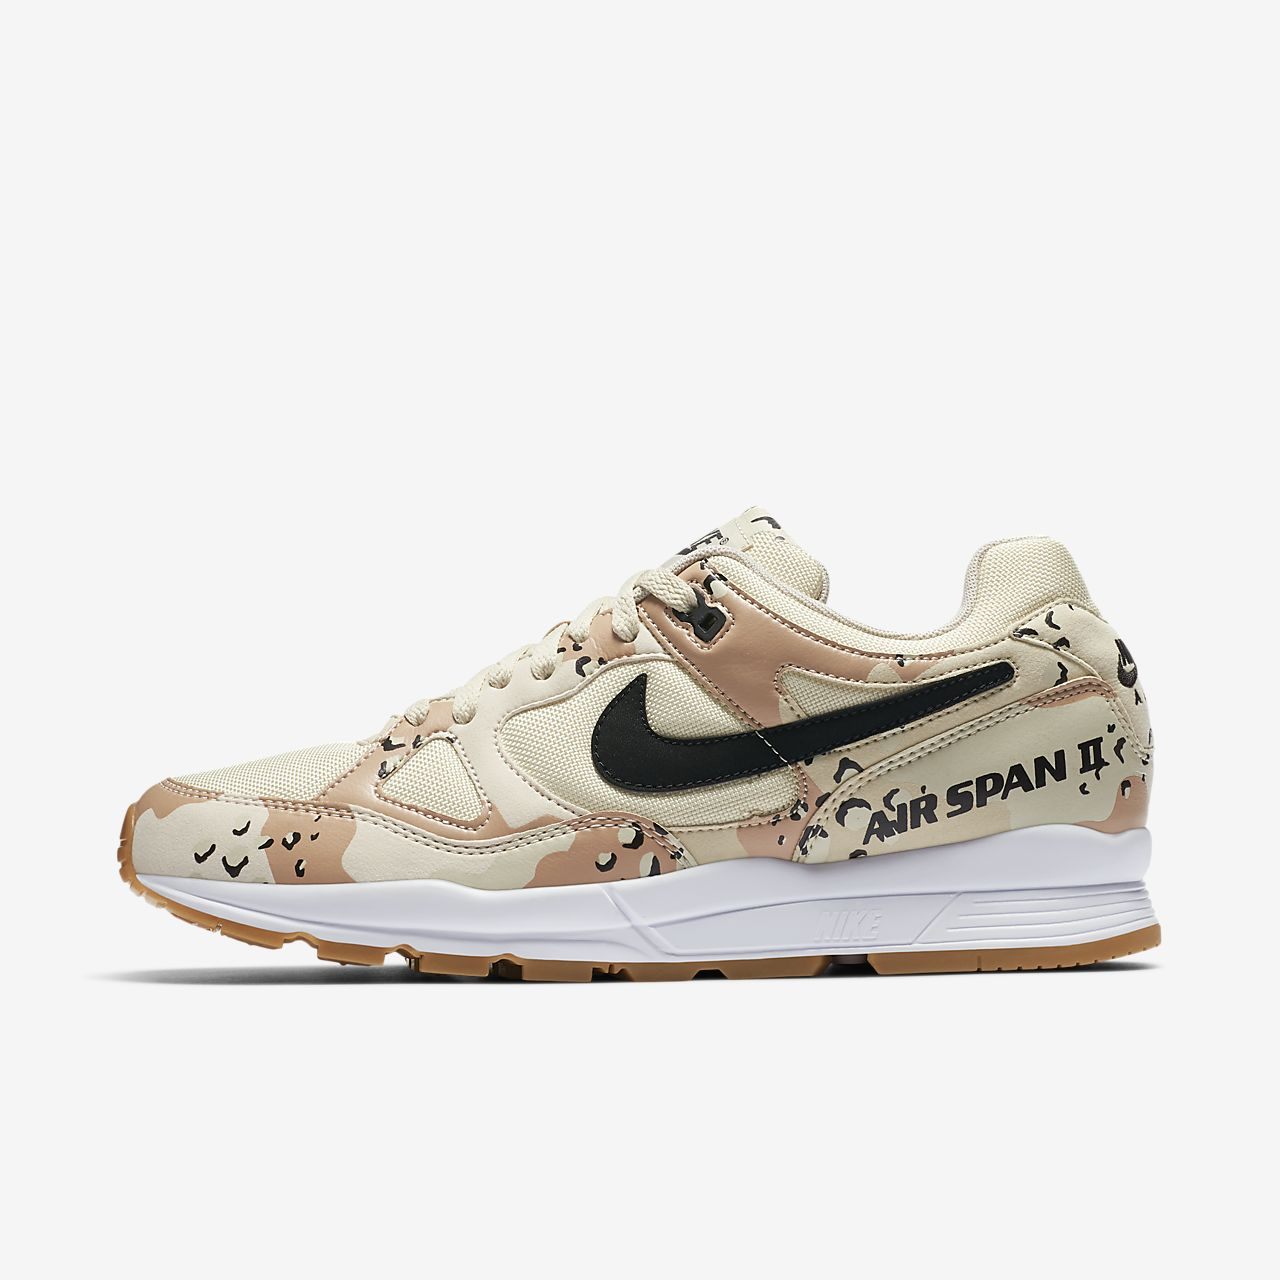 Nike Air Span II Premium Mens Shoe